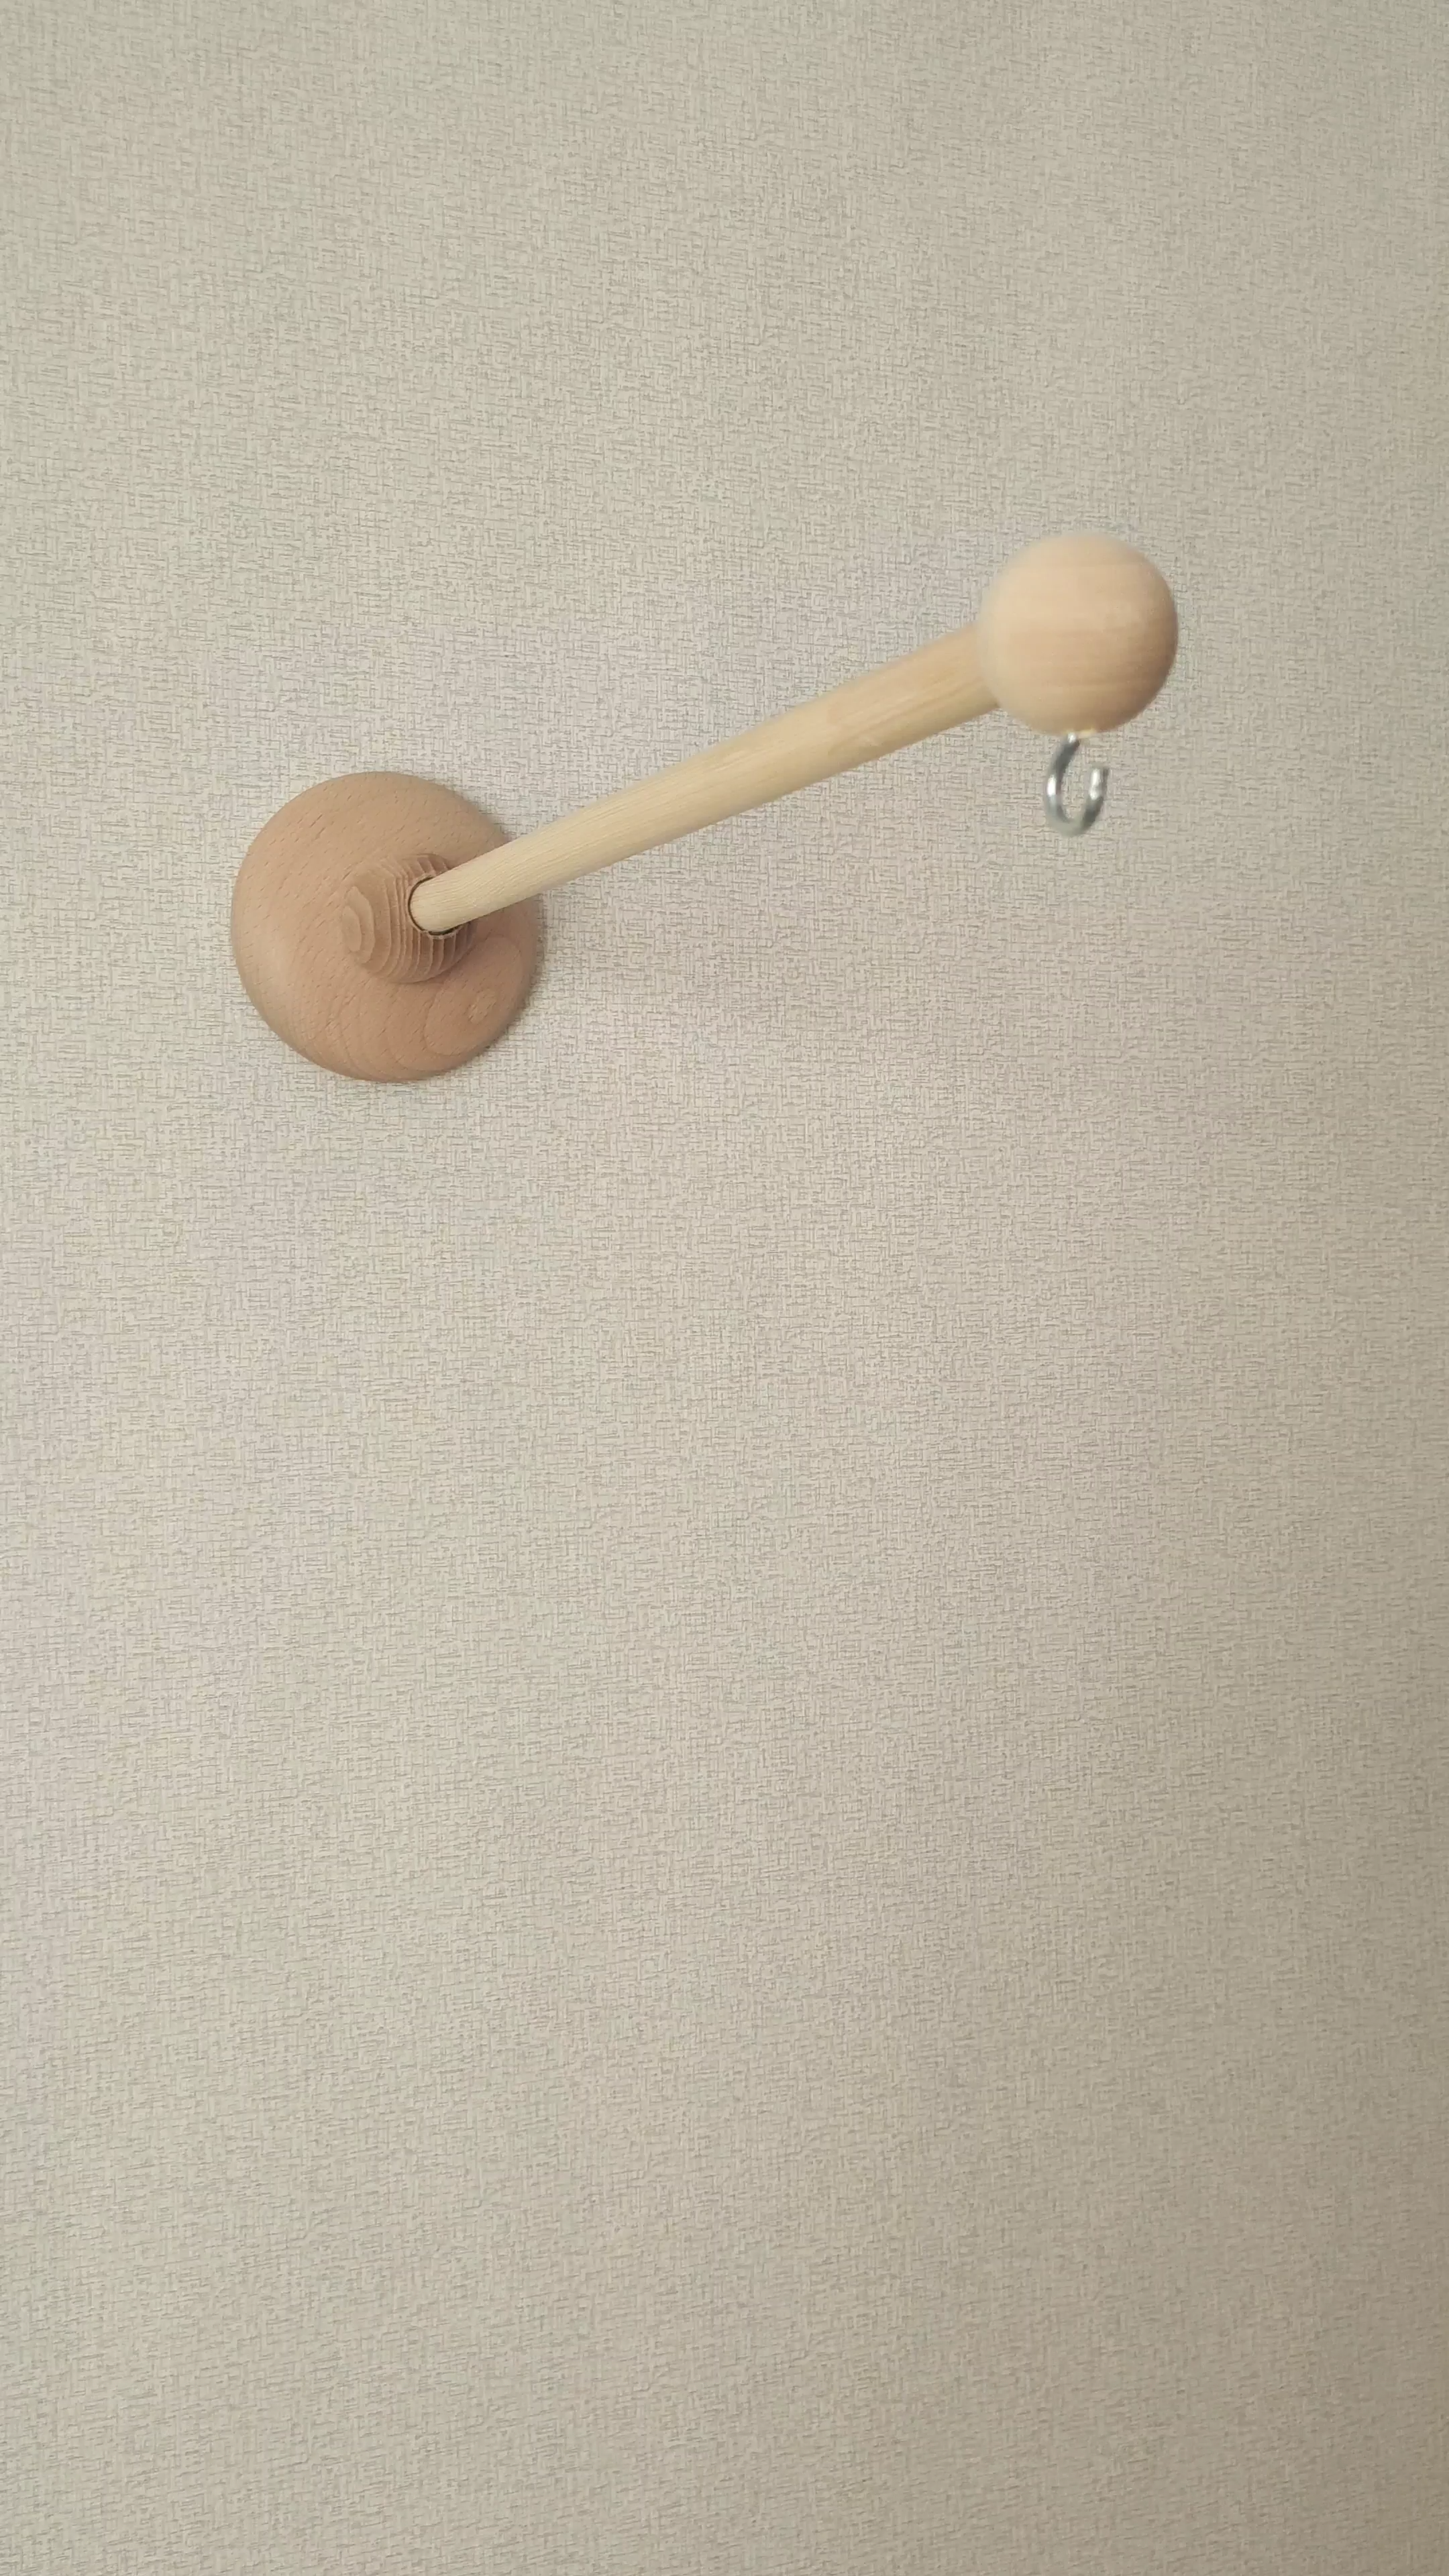 Wall Wood Arm For Baby Mobile With Music Box Wooden Mount For Mobile Hanging Beech And Pine Nursery Mobile Holder Video Video In 2020 Wood Arms Hanging Wall Decor Baby Mobile